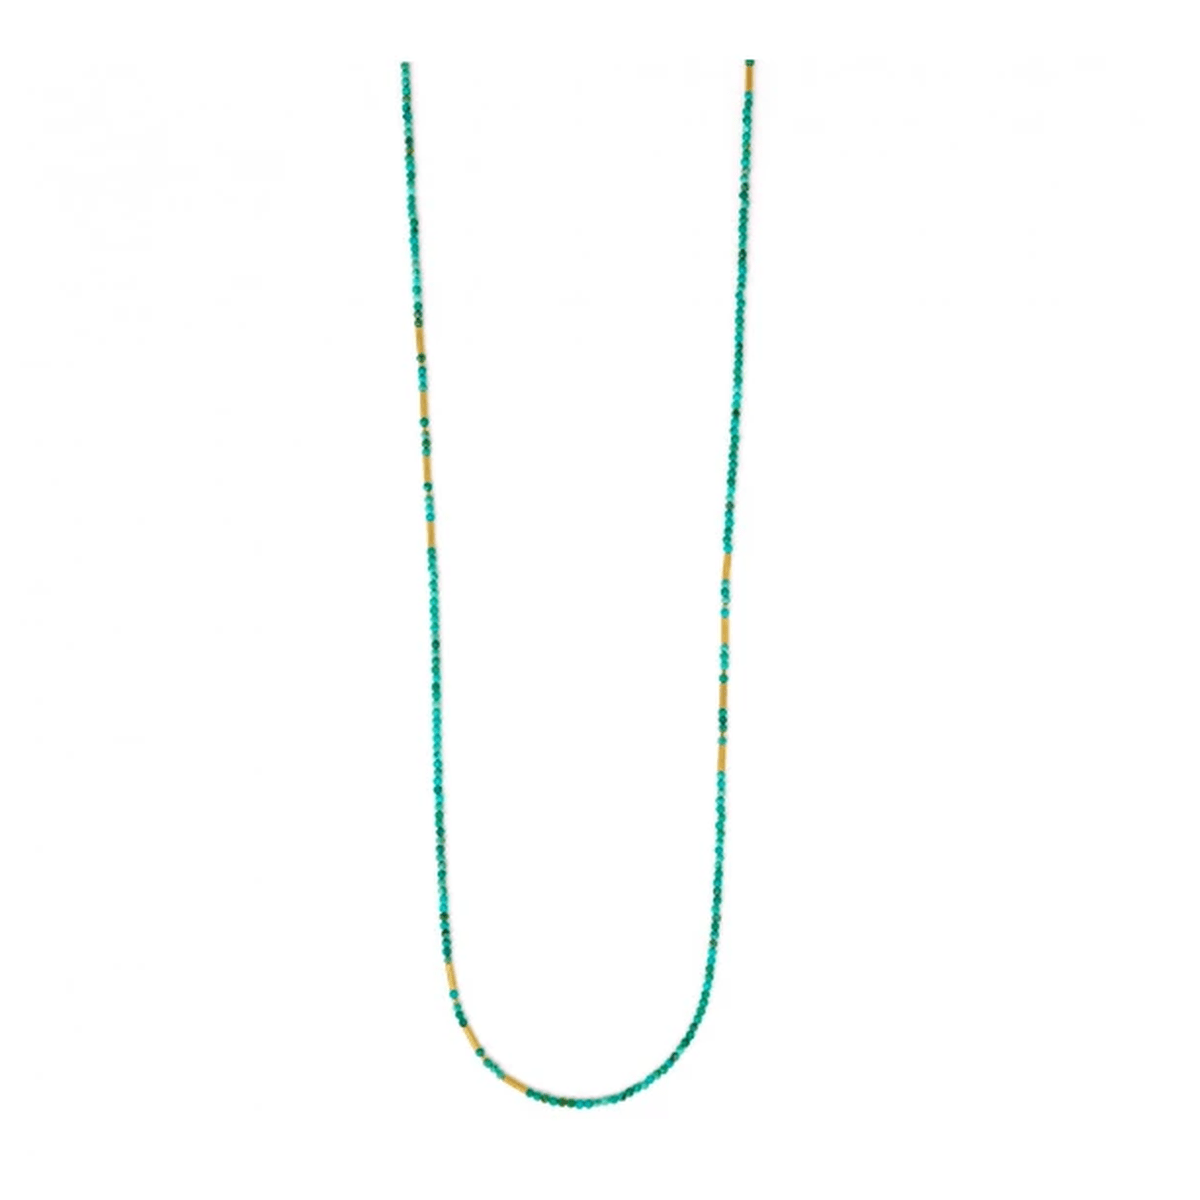 Landelon Blue Turquoise Necklace - 84407256-Bernd Wolf-Renee Taylor Gallery